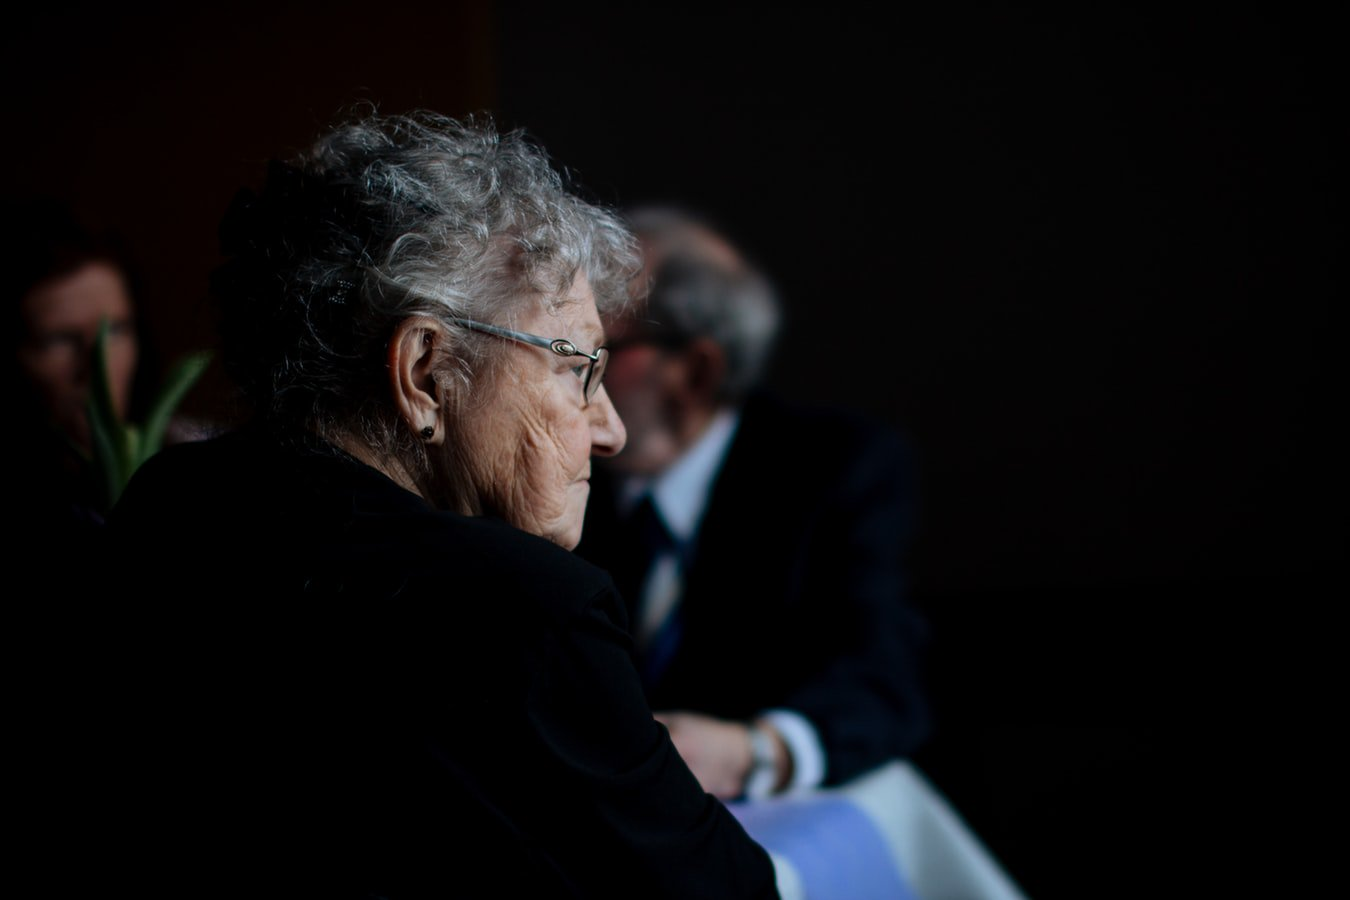 An older woman with Alzheimer's sitting in a room with friends